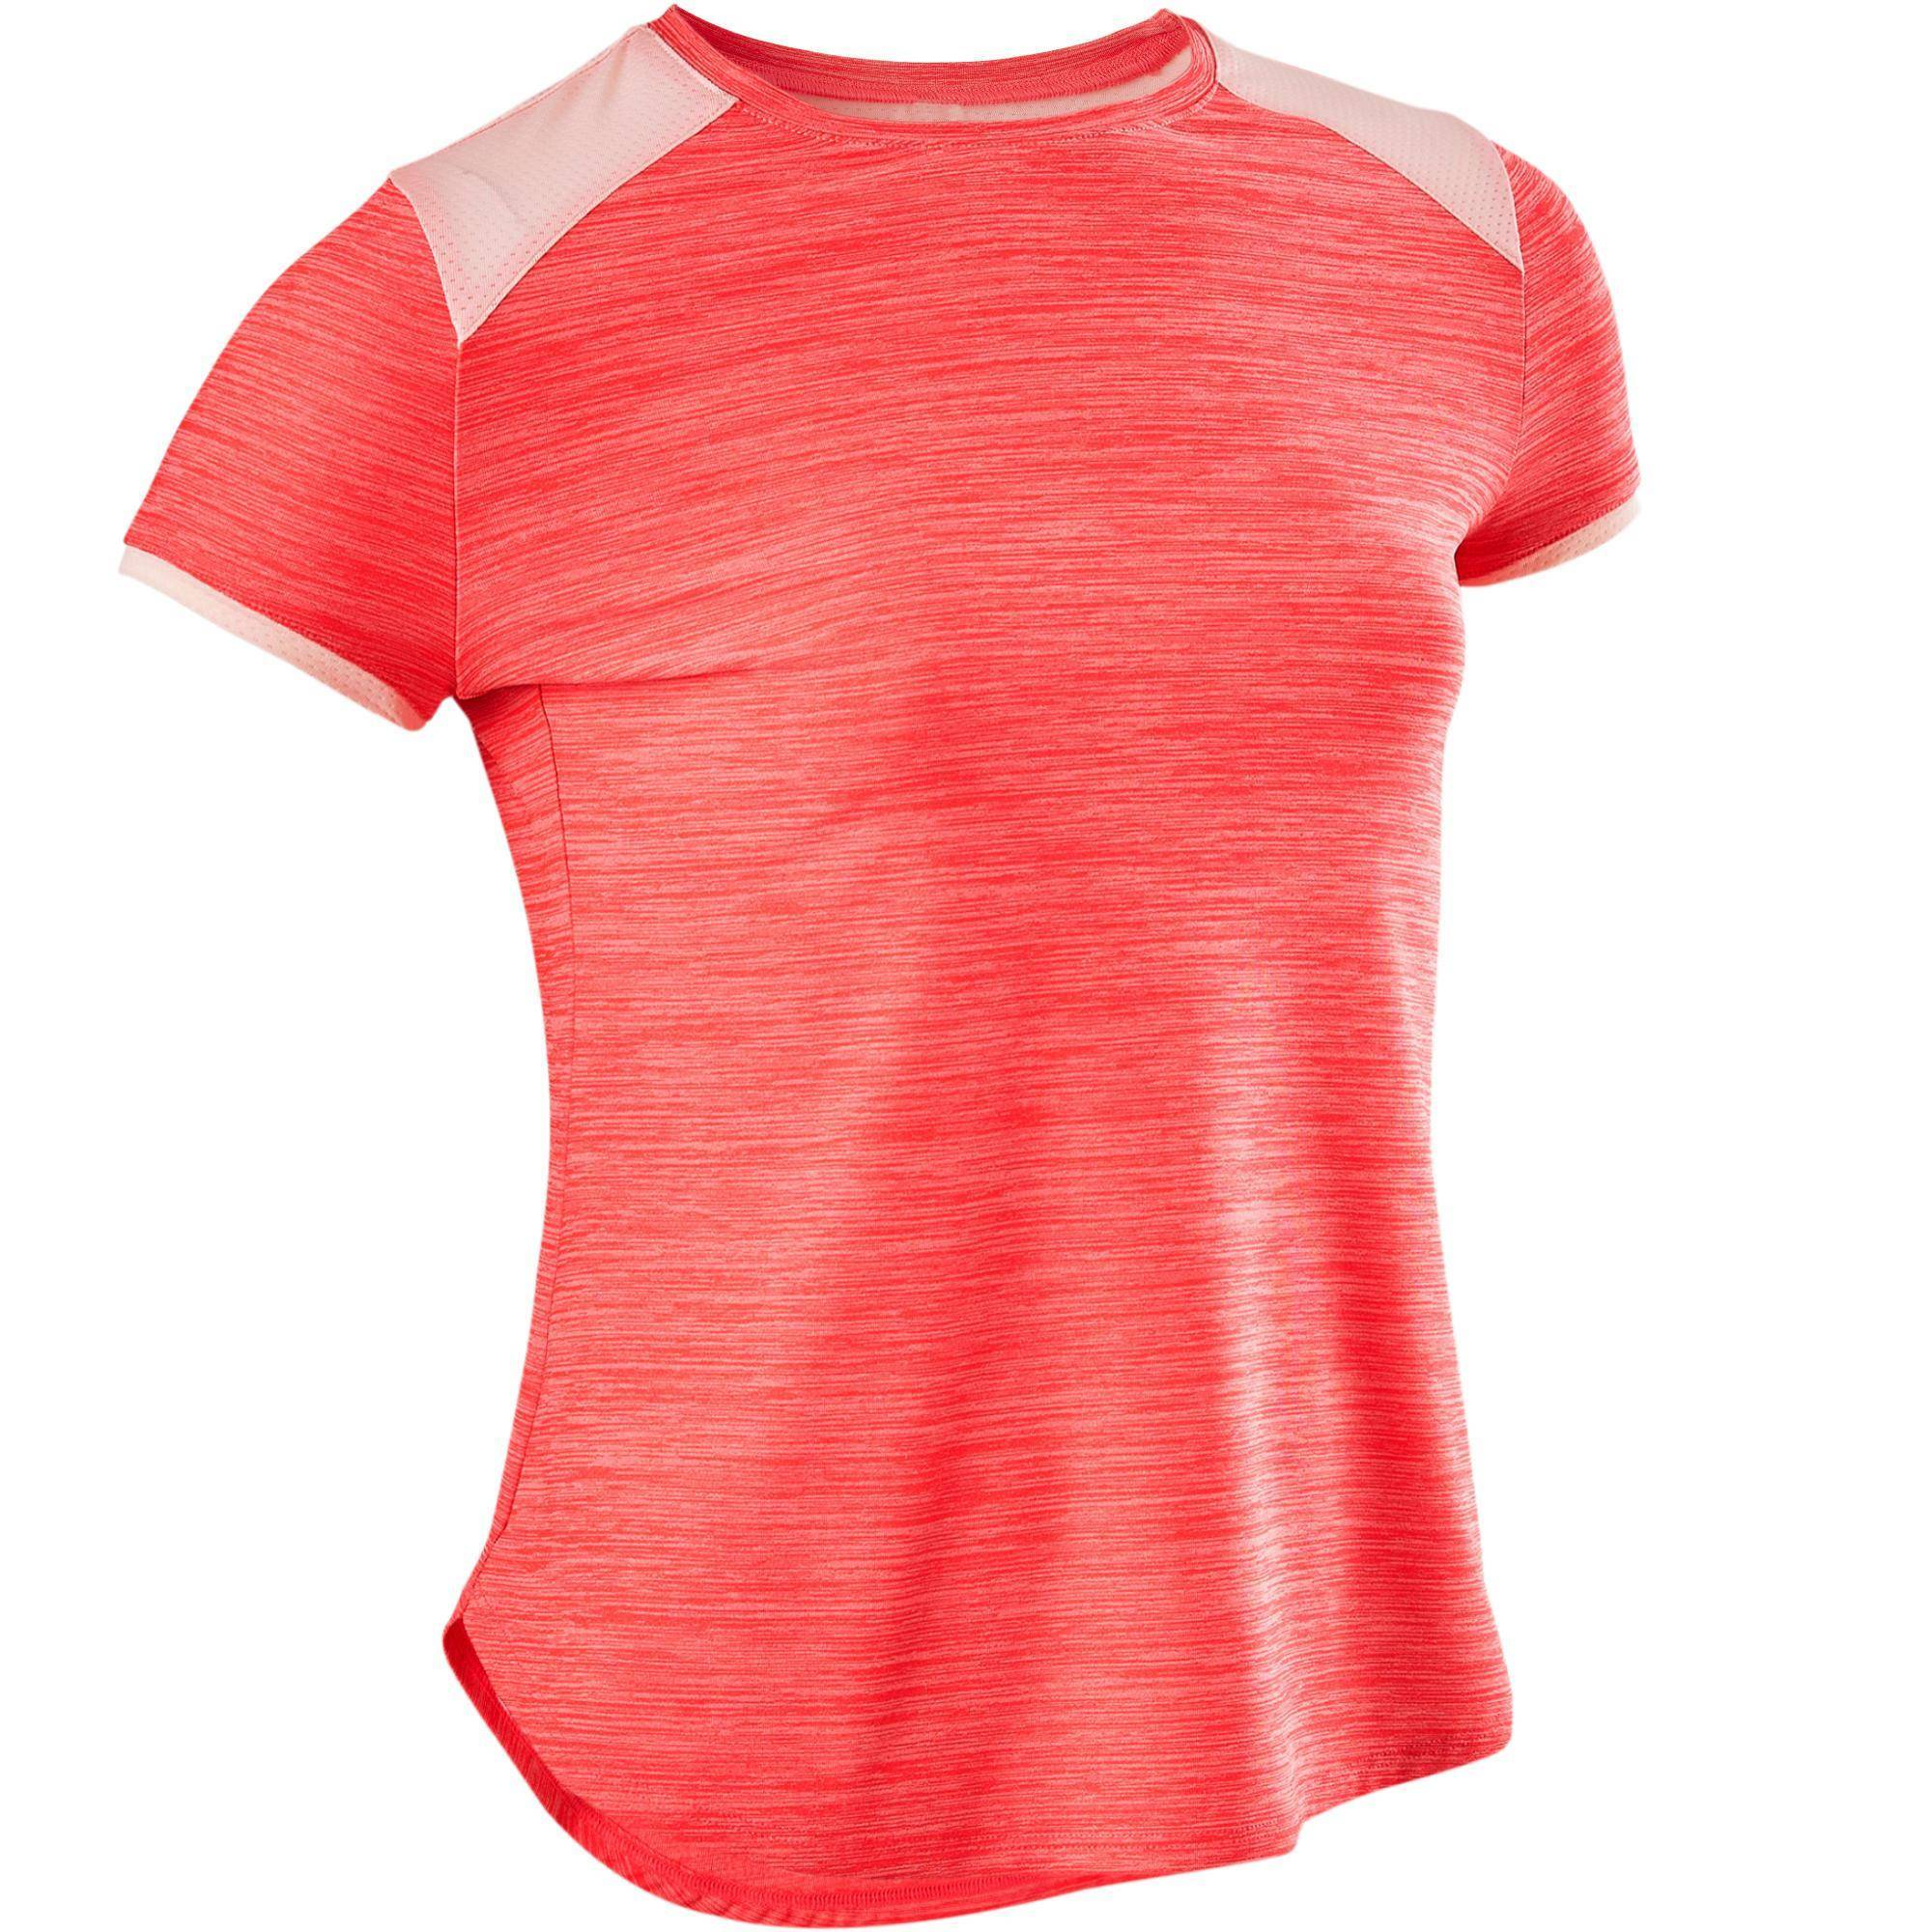 Domyos T-Shirt synthétique respirant manches courtes S500 fille GYM ENFANT rose - Domyos